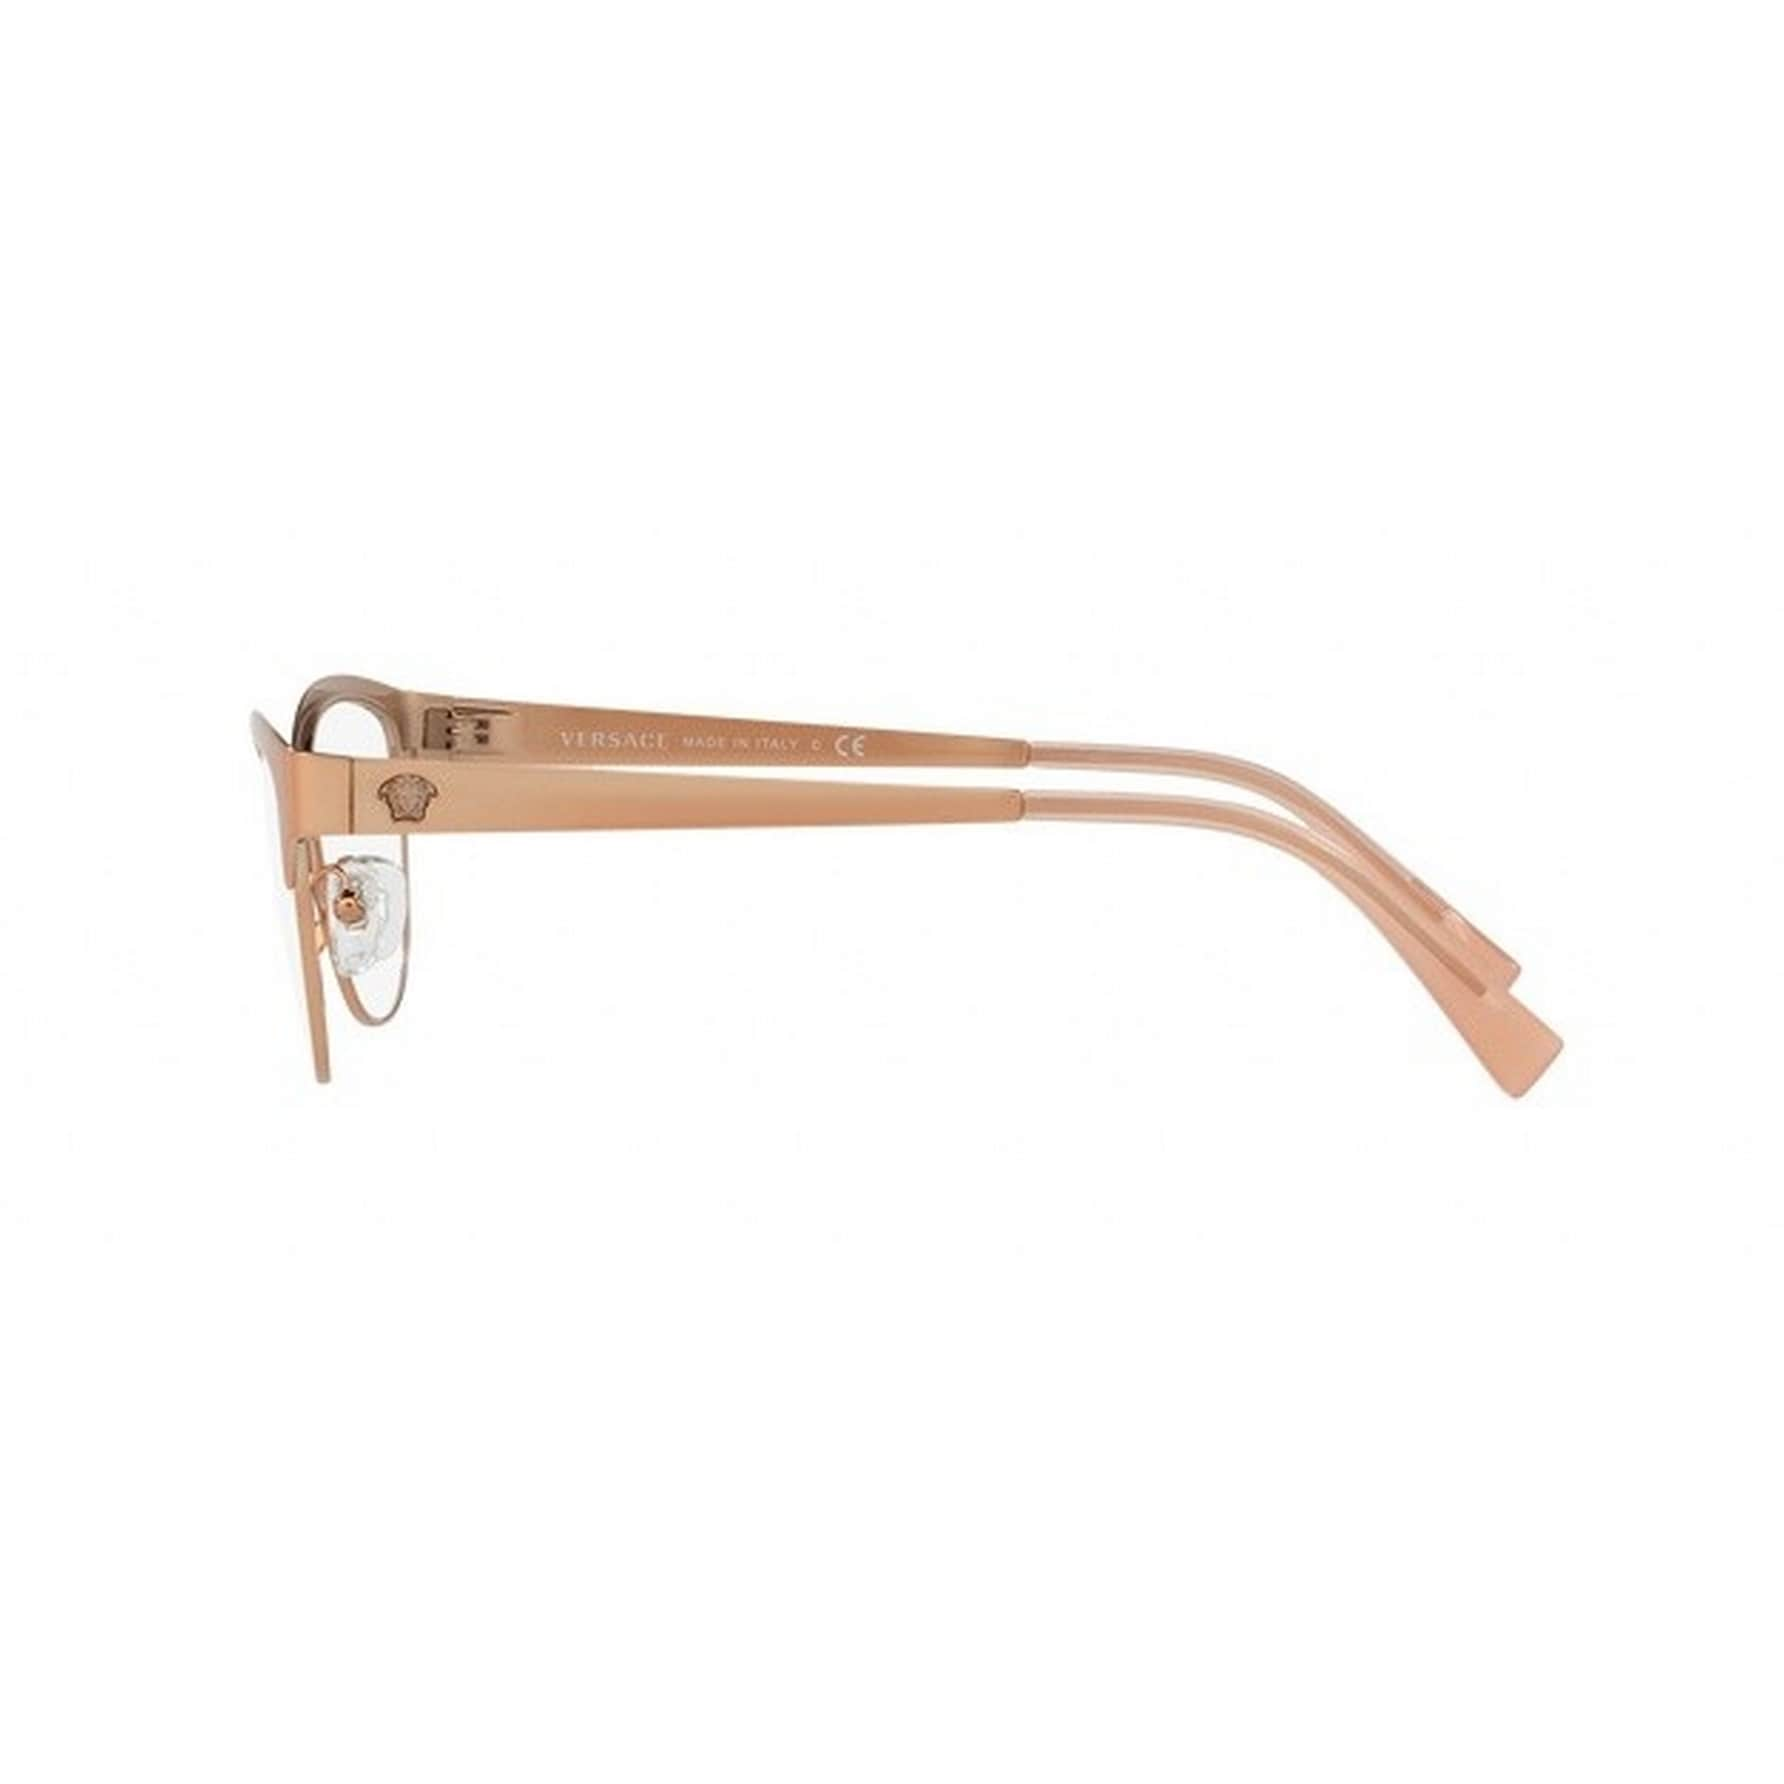 2385f11dba9 Shop Versace Women s VE1240 1396 53 Oval Metal Brown Clear Eyeglasses -  Free Shipping Today - Overstock.com - 14779989